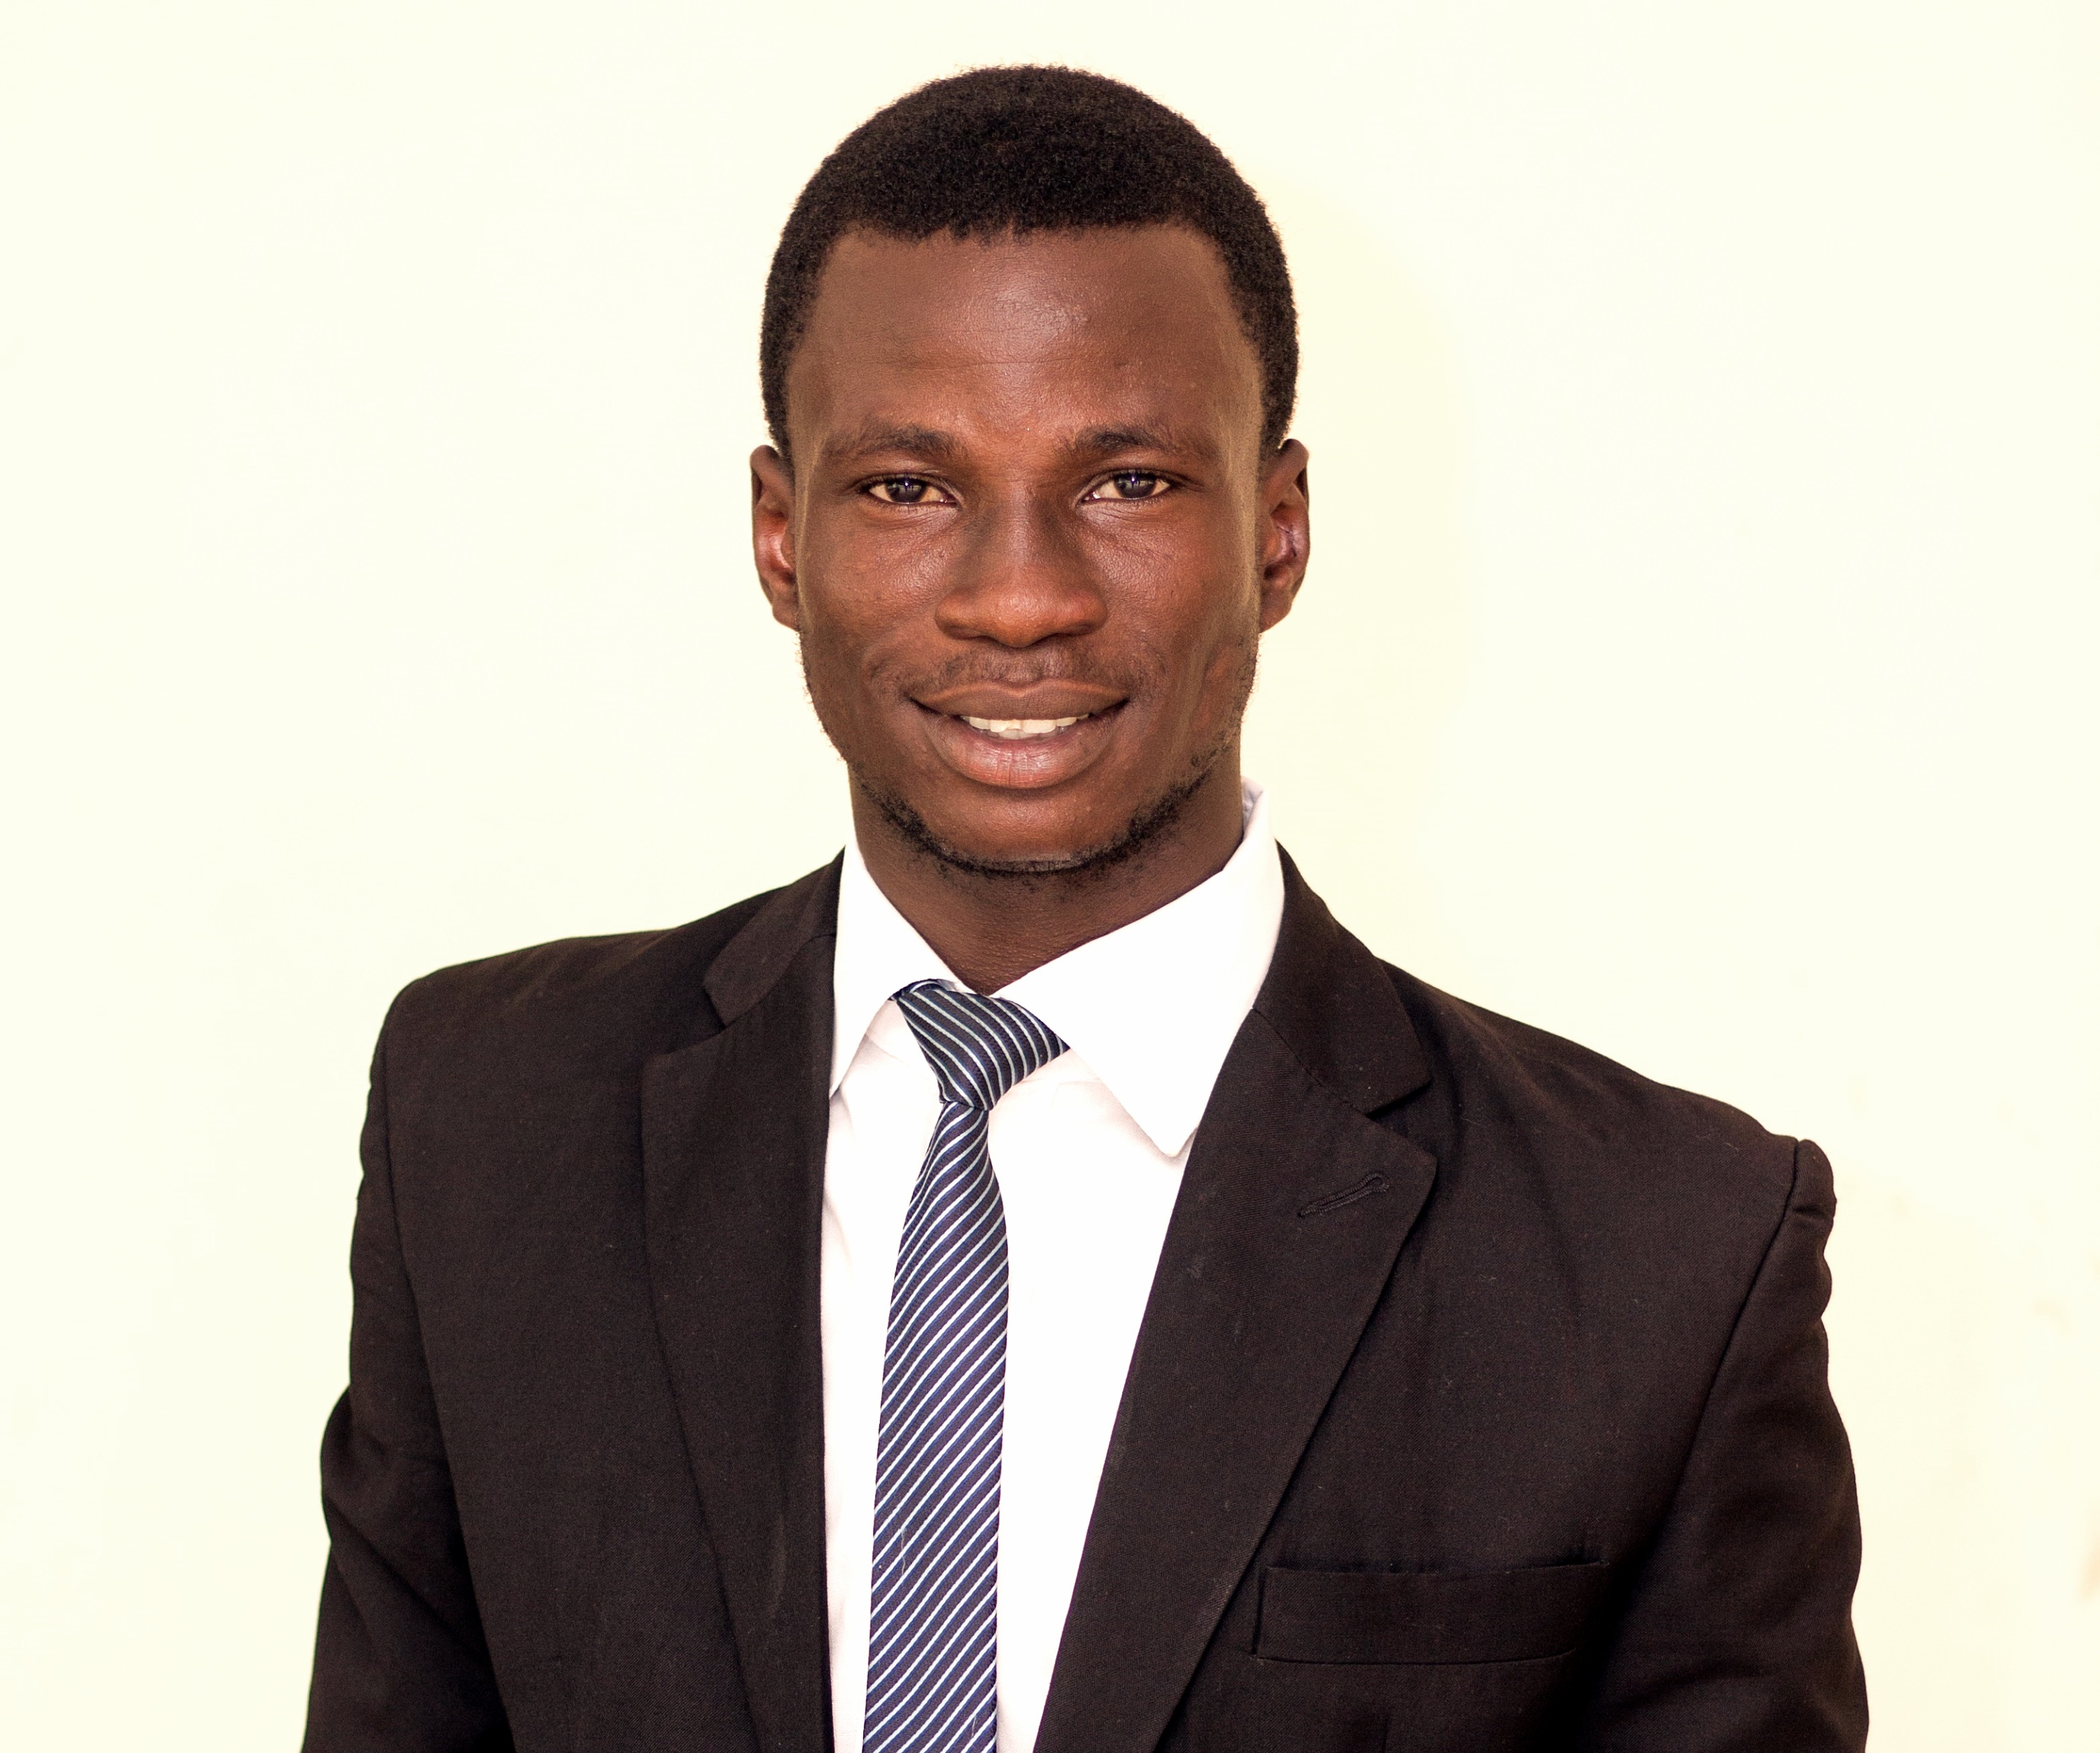 Folarin Oluwasayo, Civil Engineer